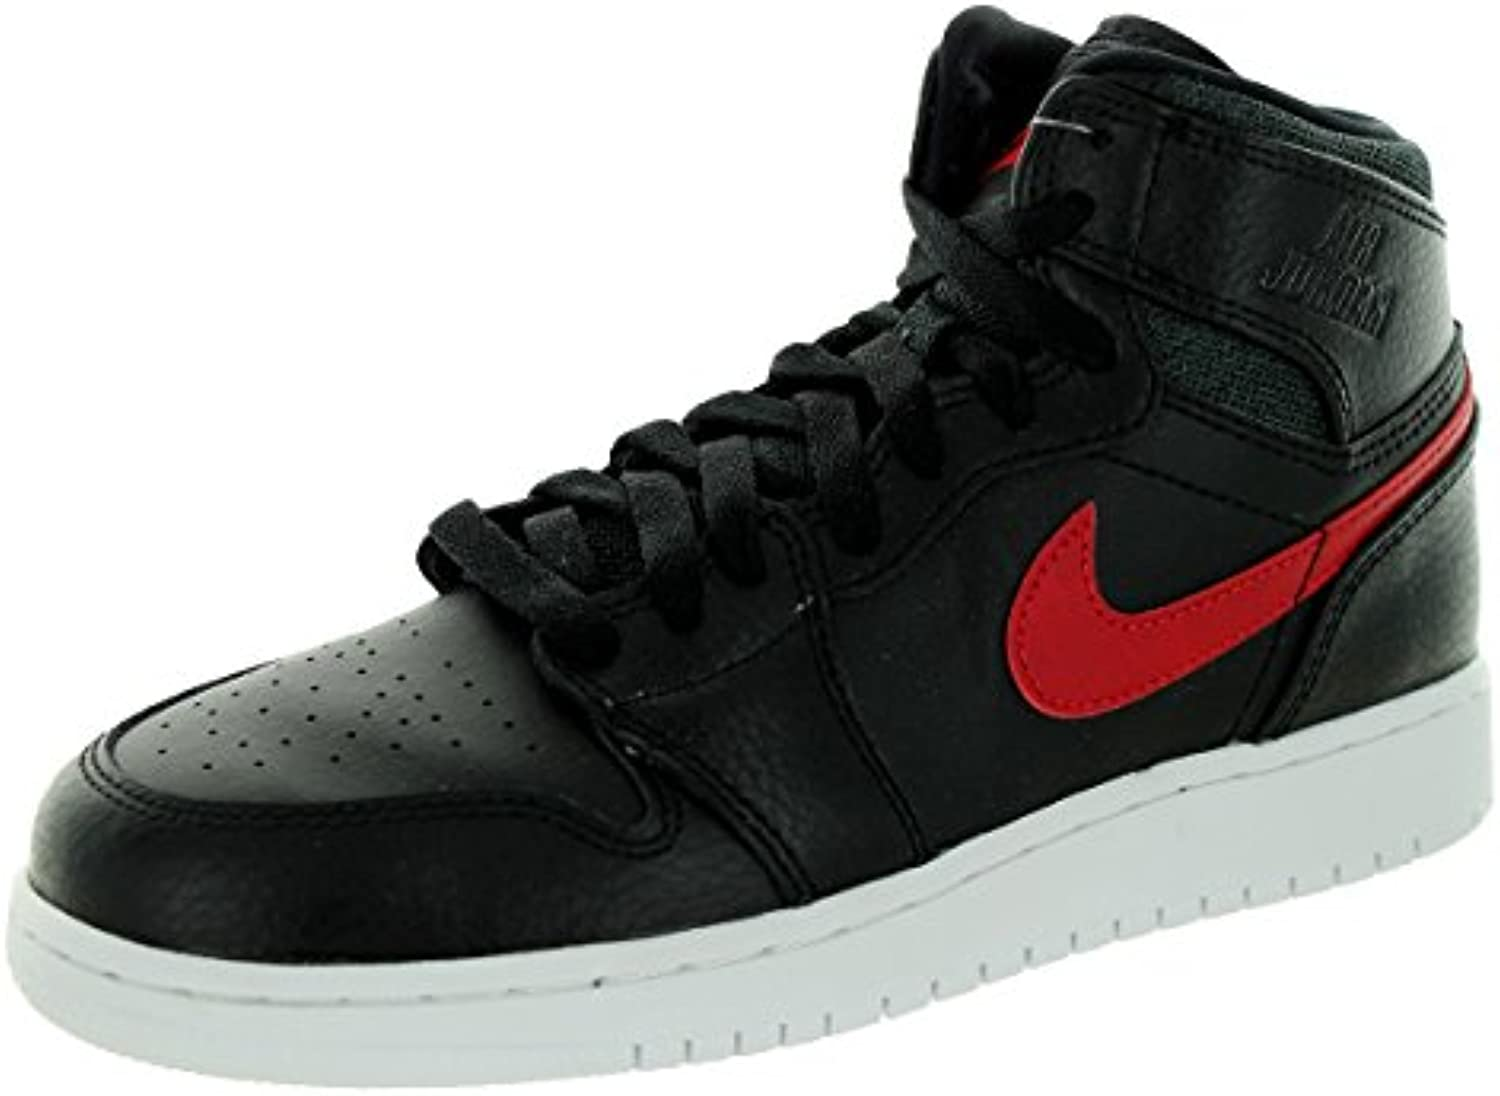 Nike - Air Jordan 1 Retro High - Color: Negro - Size: 39.0  -